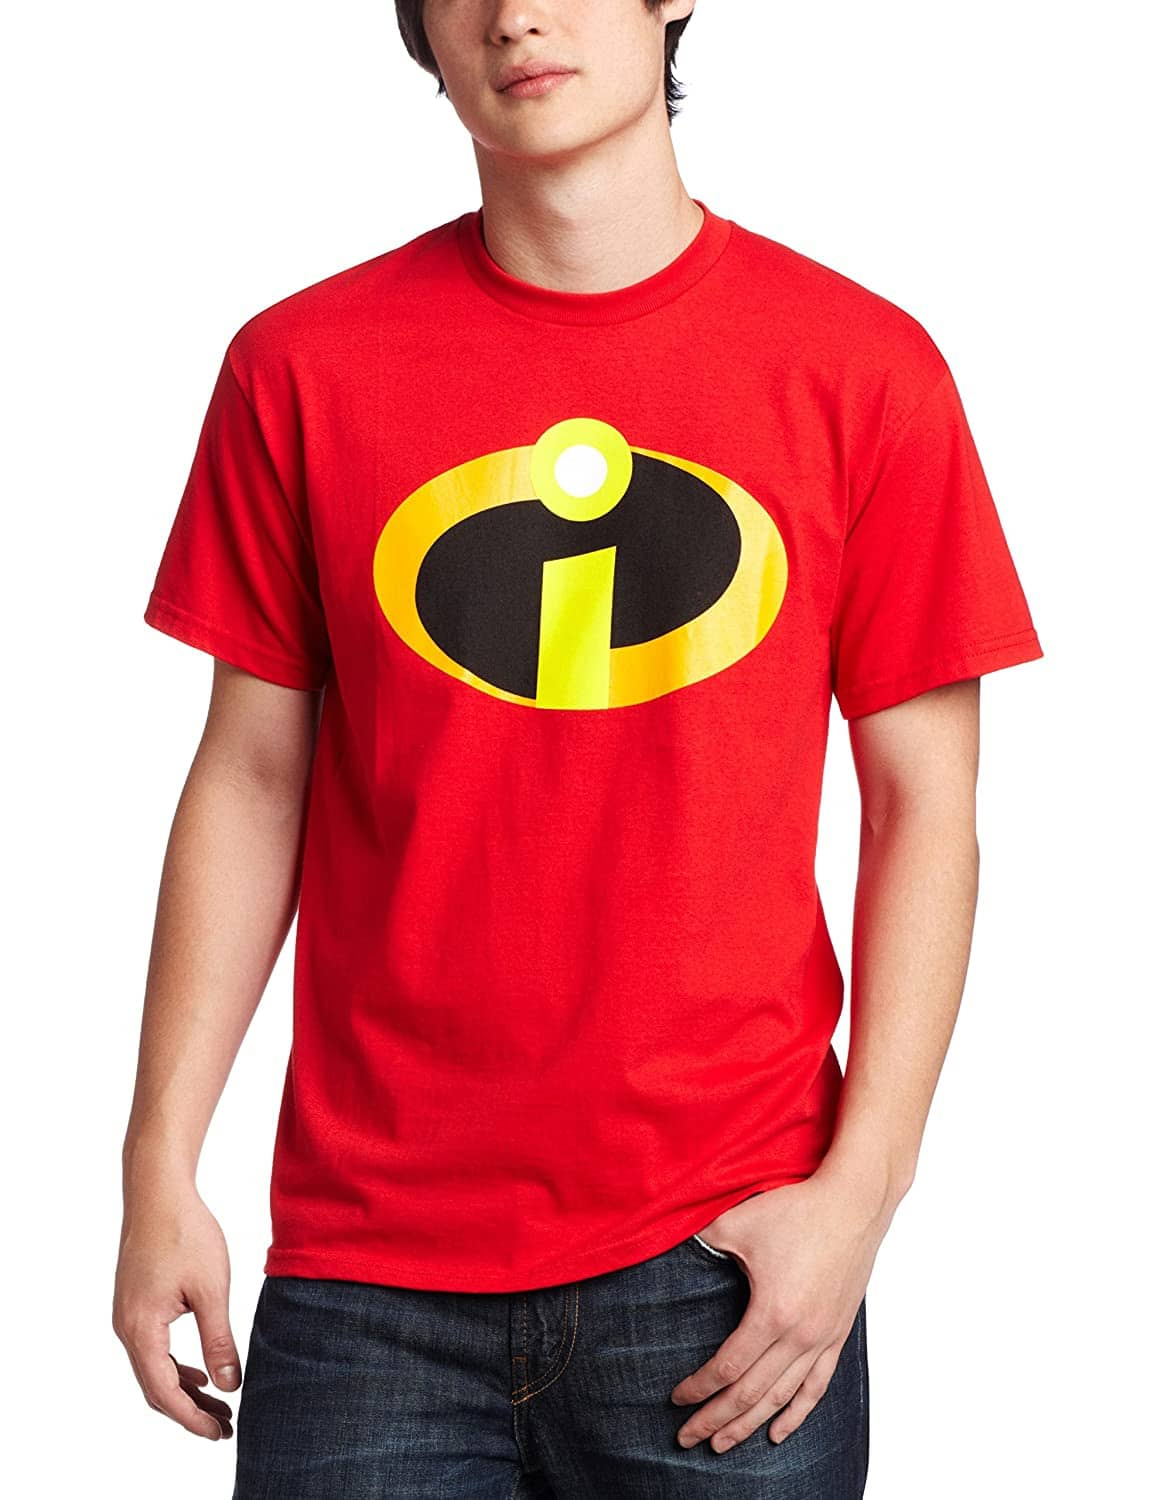 Disney Men's The Incredibles Logo Costume T-Shirt (Red) $5.70 + Free Shipping w /Amazon Prime or on $25+